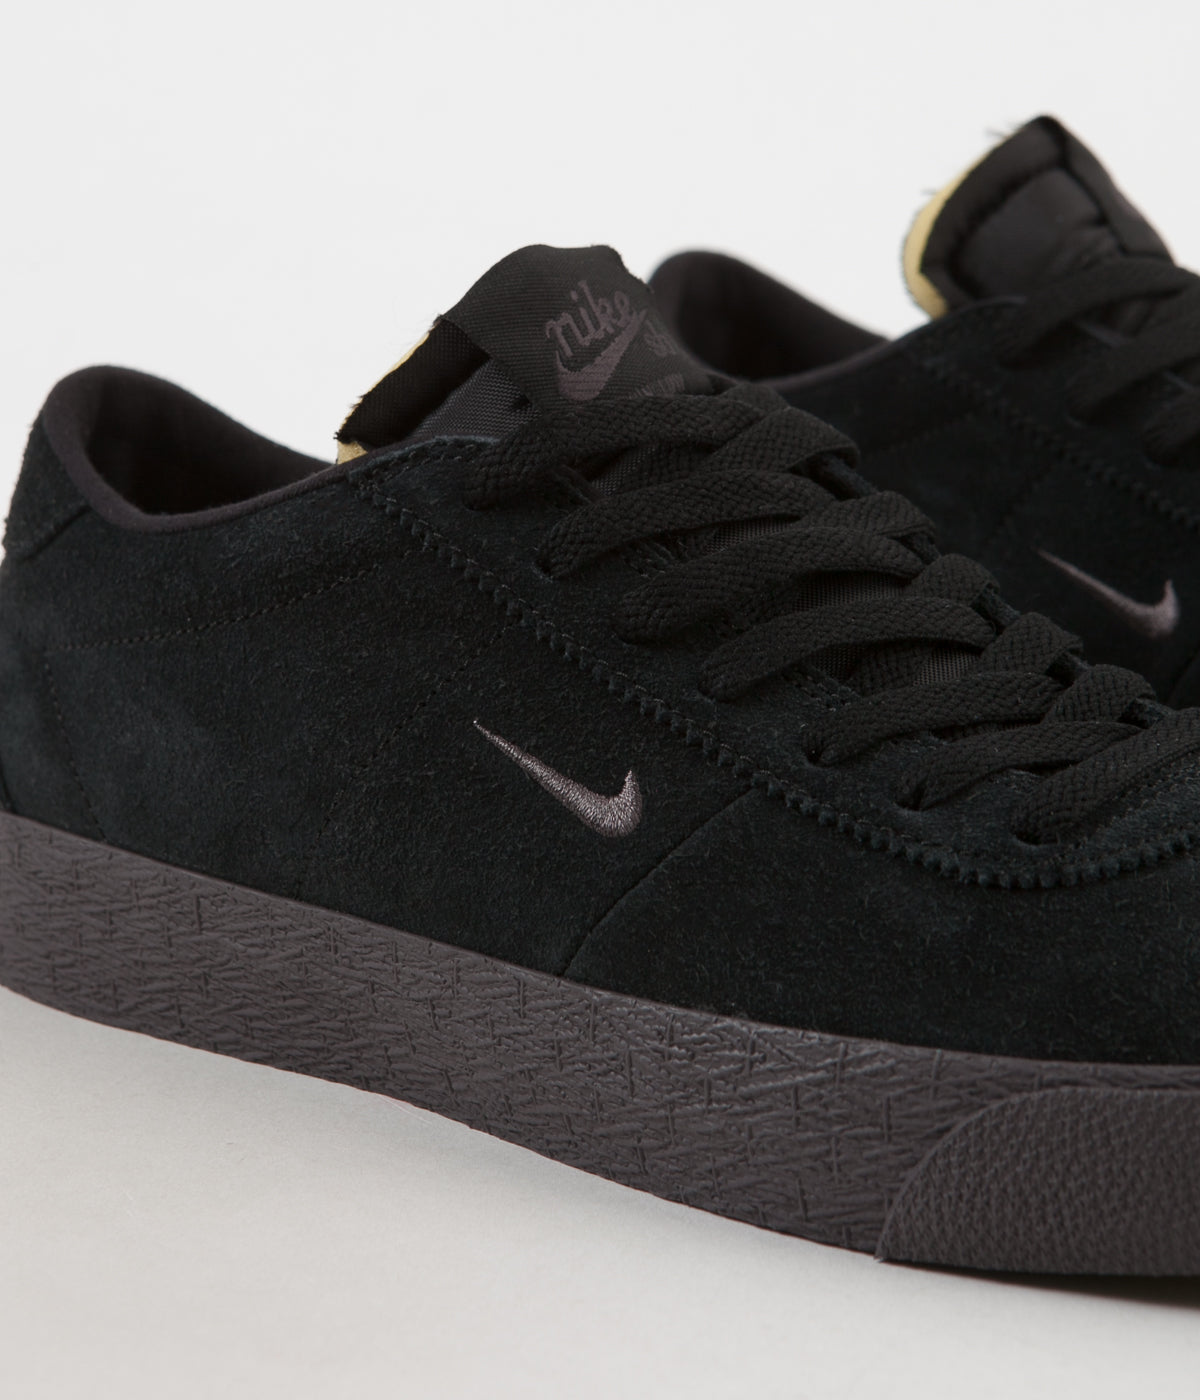 Nike SB Bruin Ultra Shoes - Black / Thunder Grey